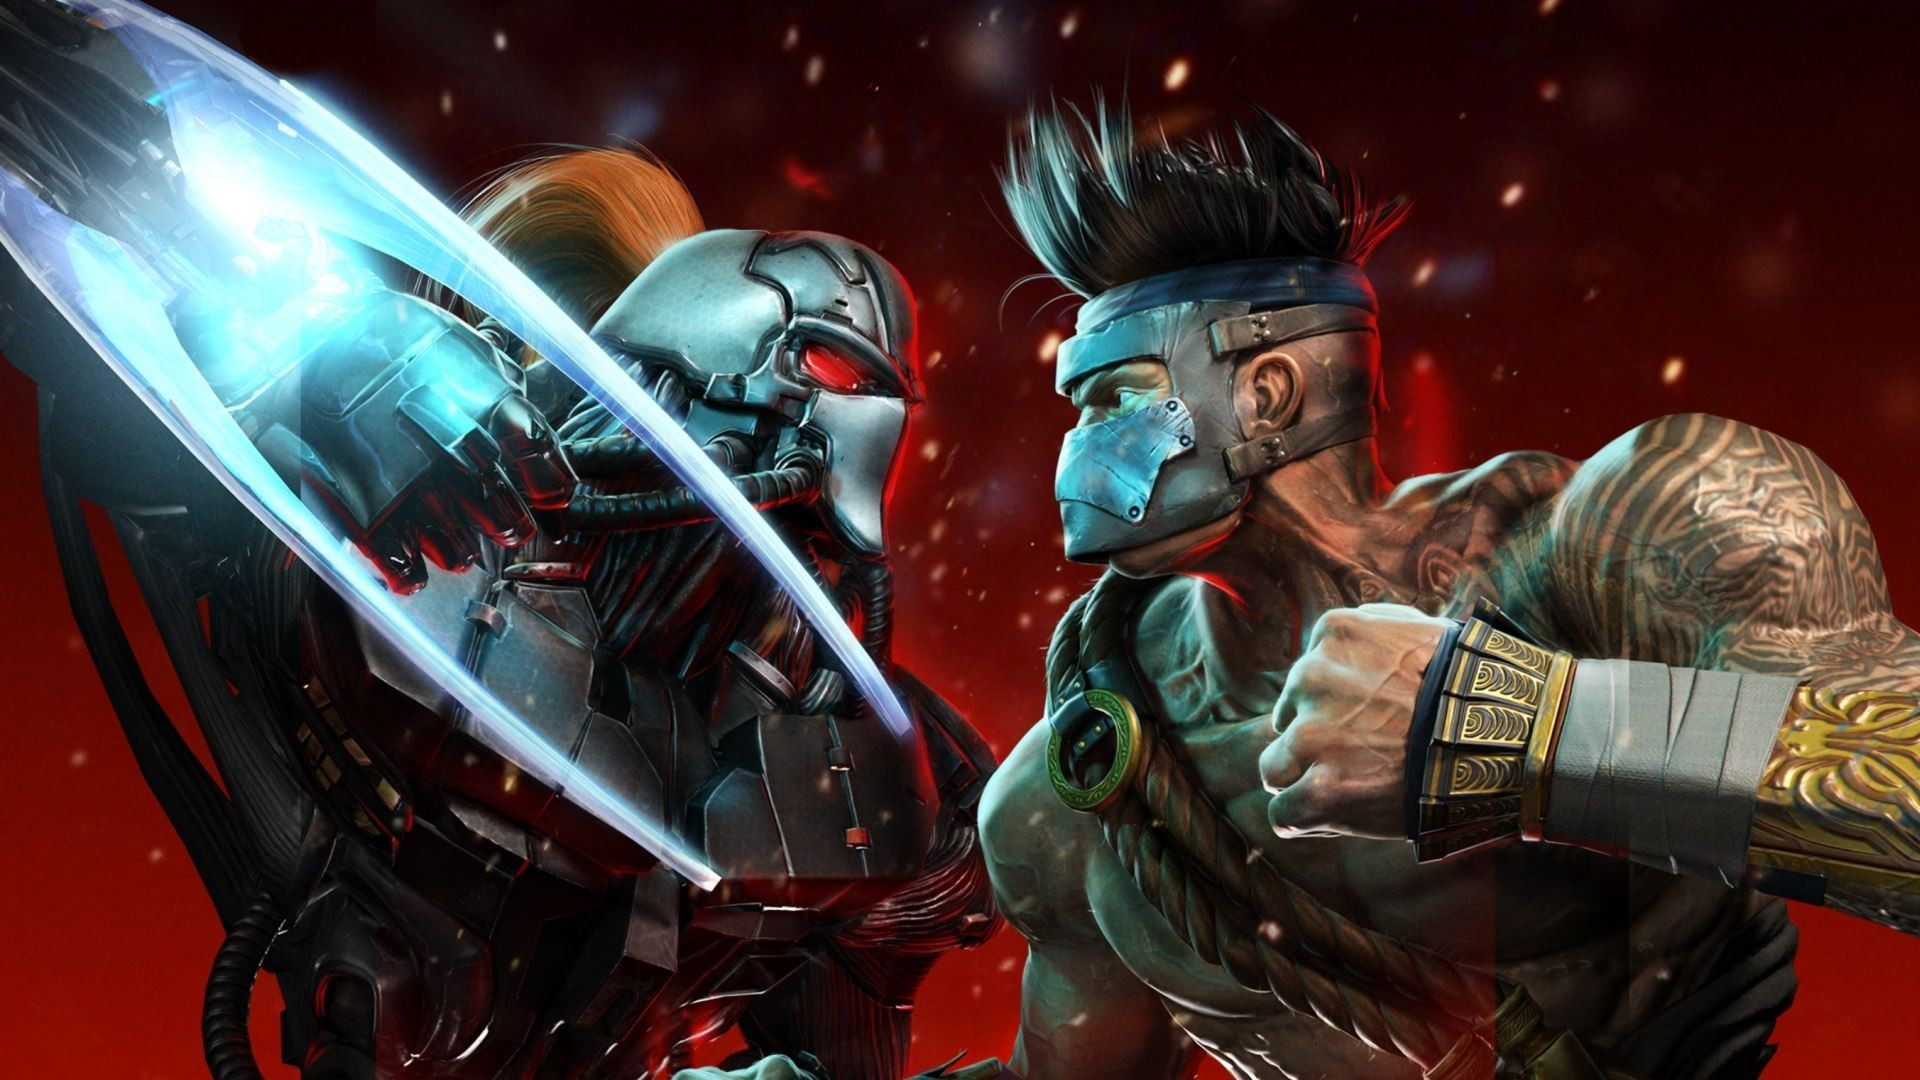 Preview wallpaper killer instinct, fulgore, fighters, battle, characters,  cyborg, fight